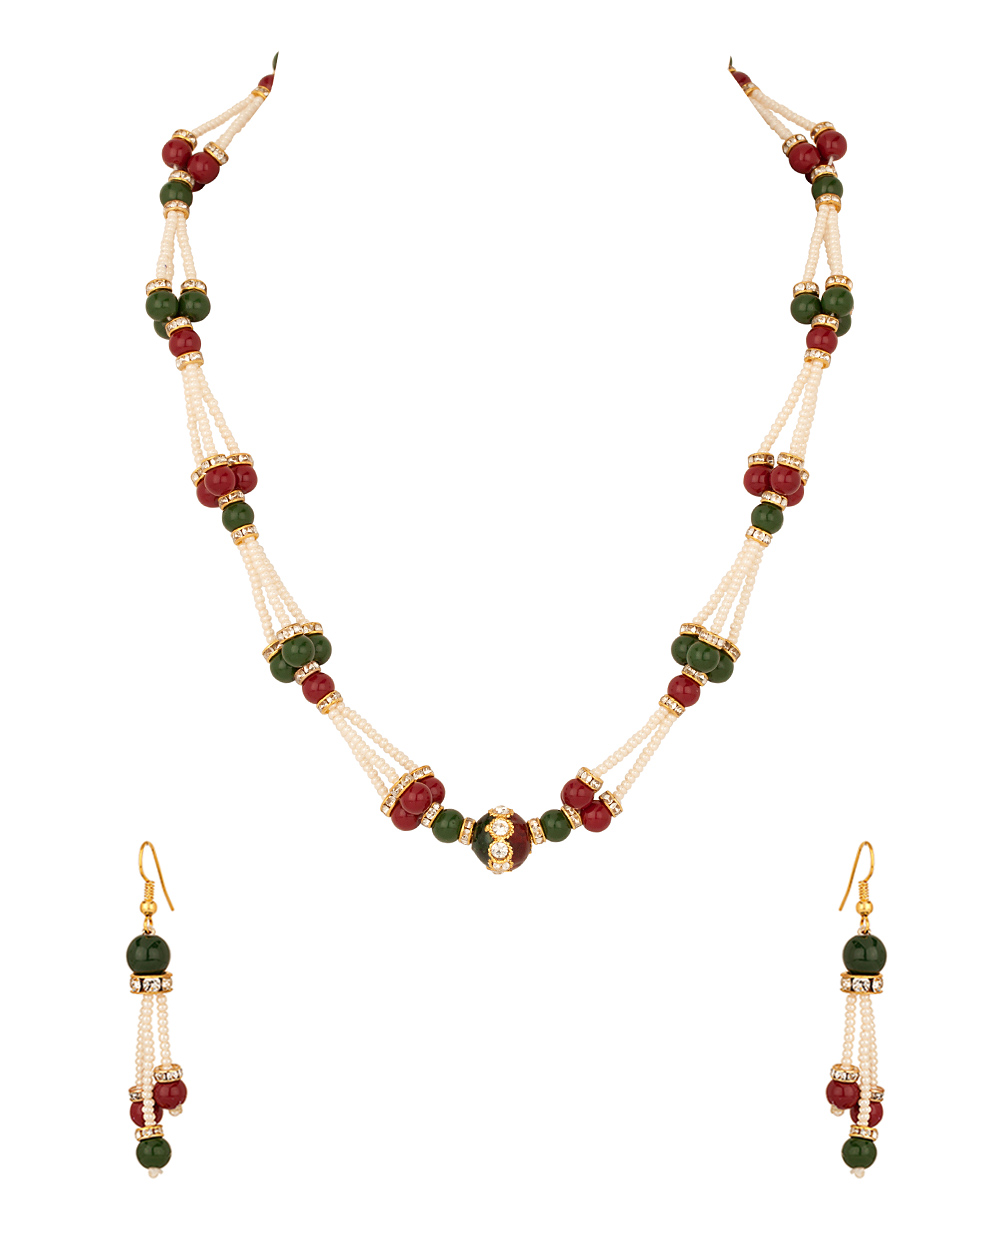 Buy Pearl Necklace Set With Round Pendant; Red; Green Beads Design ...